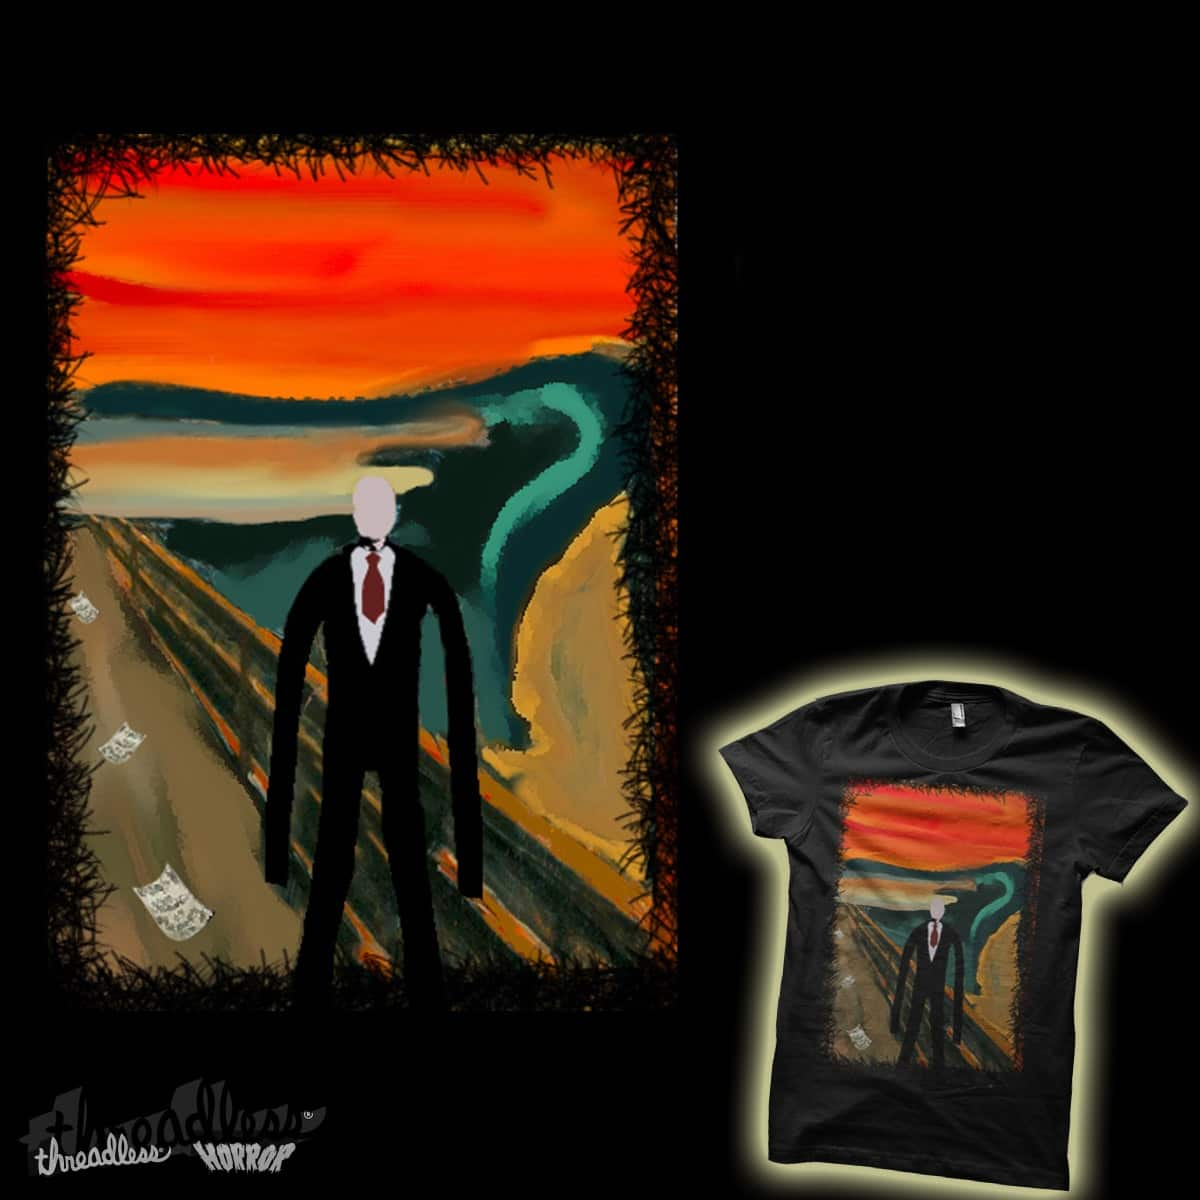 Observer... by Fks on Threadless